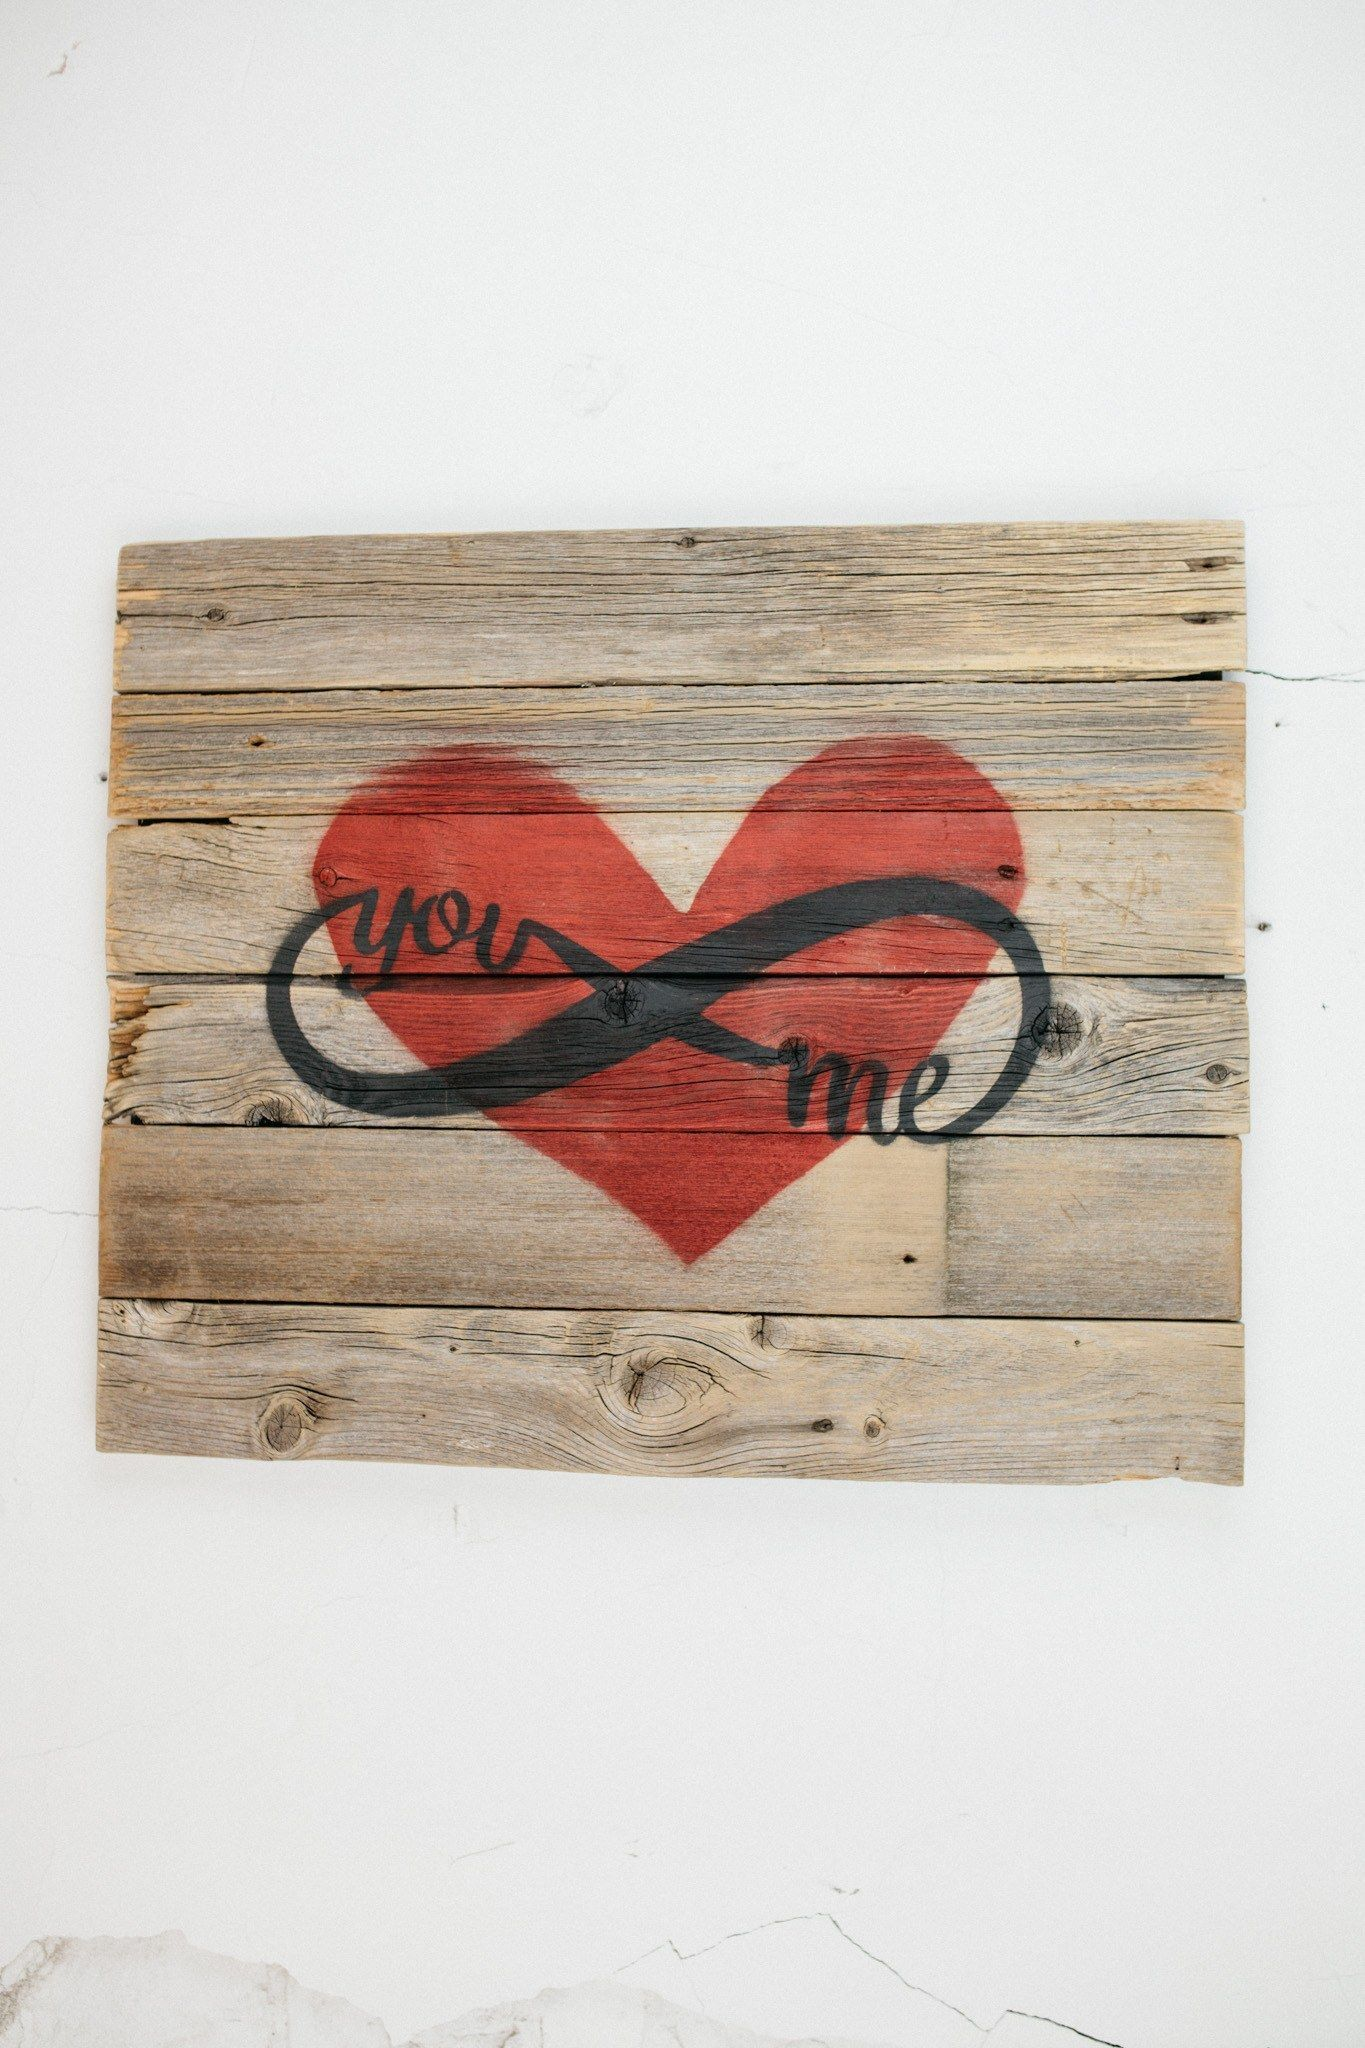 10 Kitchen And Home Decor Items Every 20 Something Needs: What Better Way To Express The Love In Your Home Than This